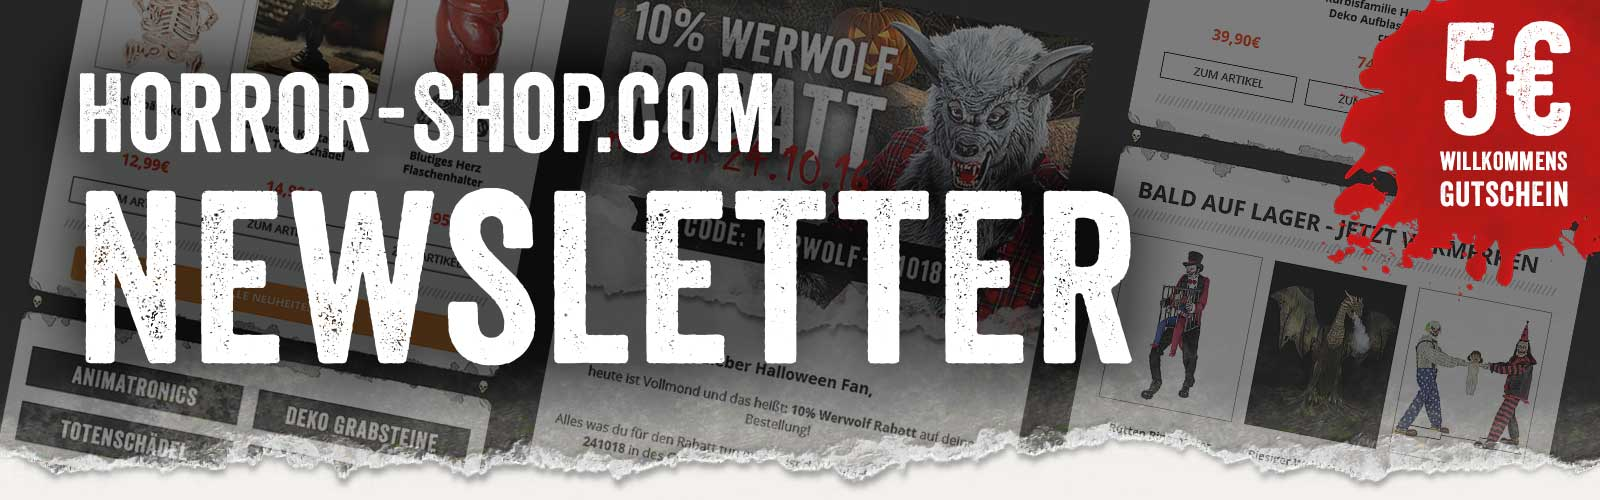 Horror-Shop.com Newsletter